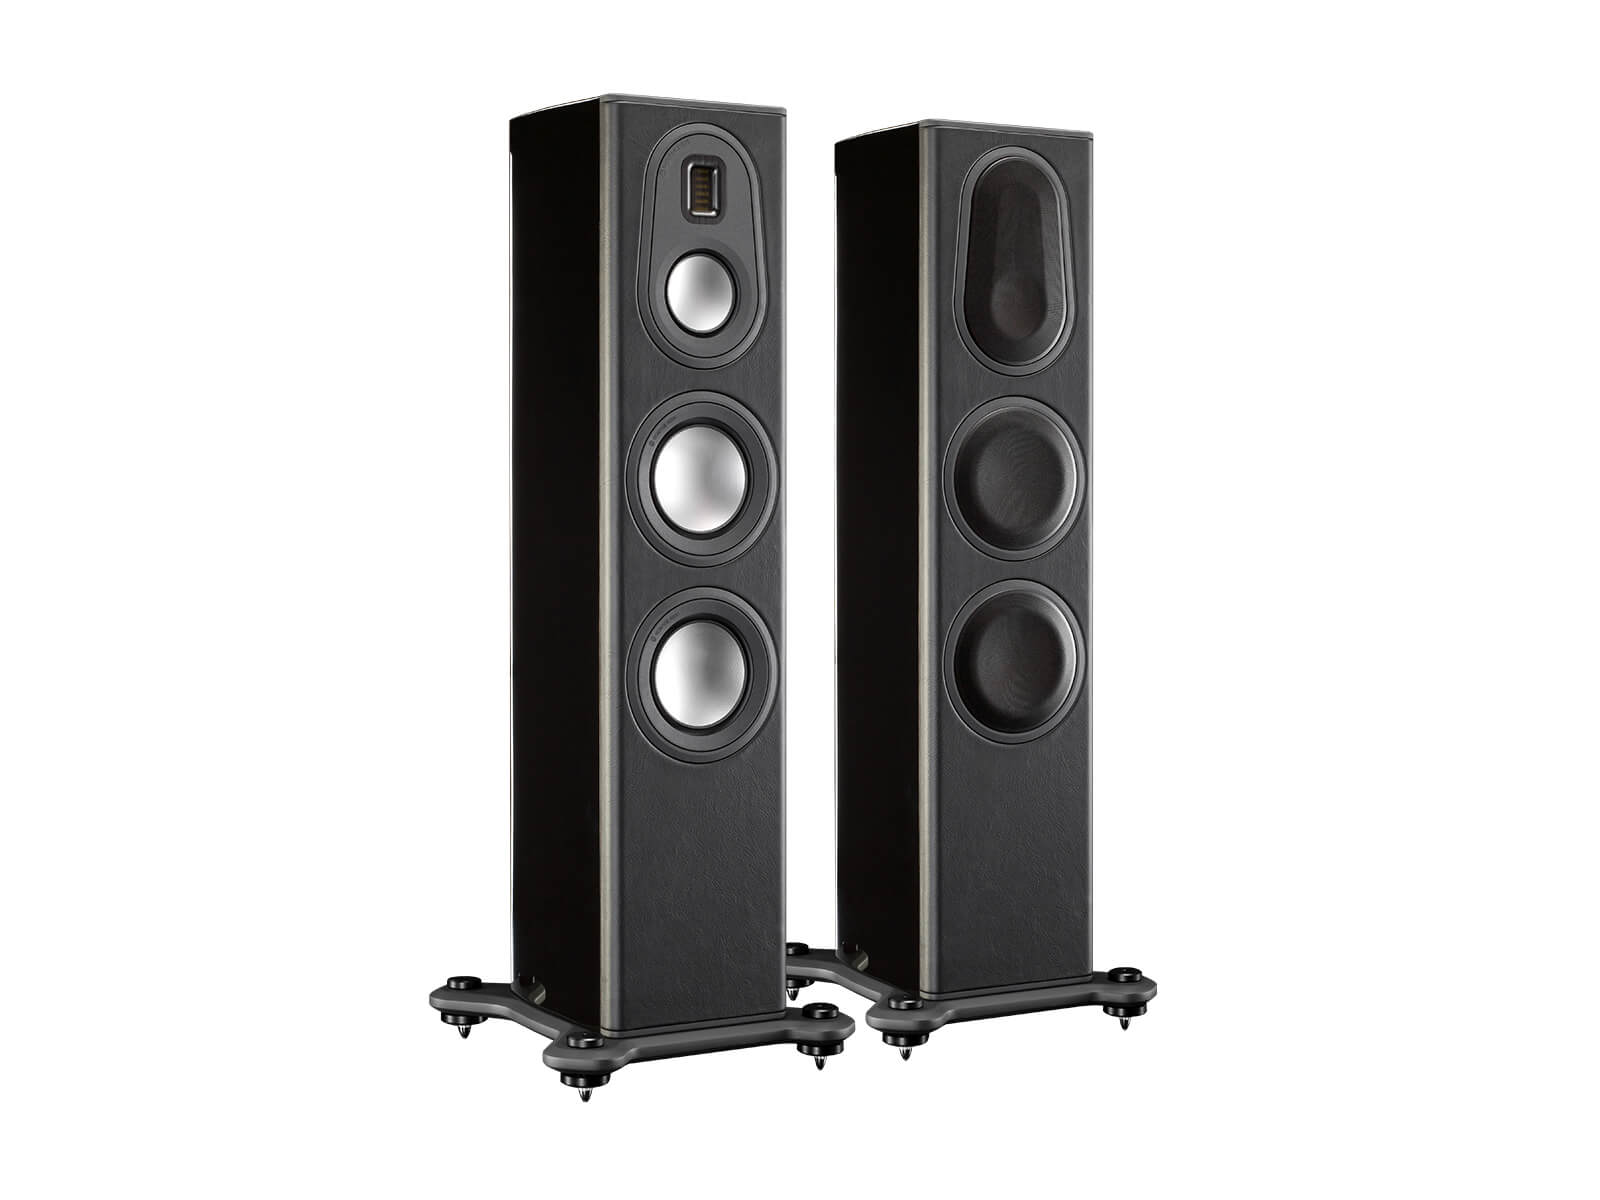 Platinum PL200 II, floorstanding speakers, featuring a grille and an ebony real wood veneer finish.